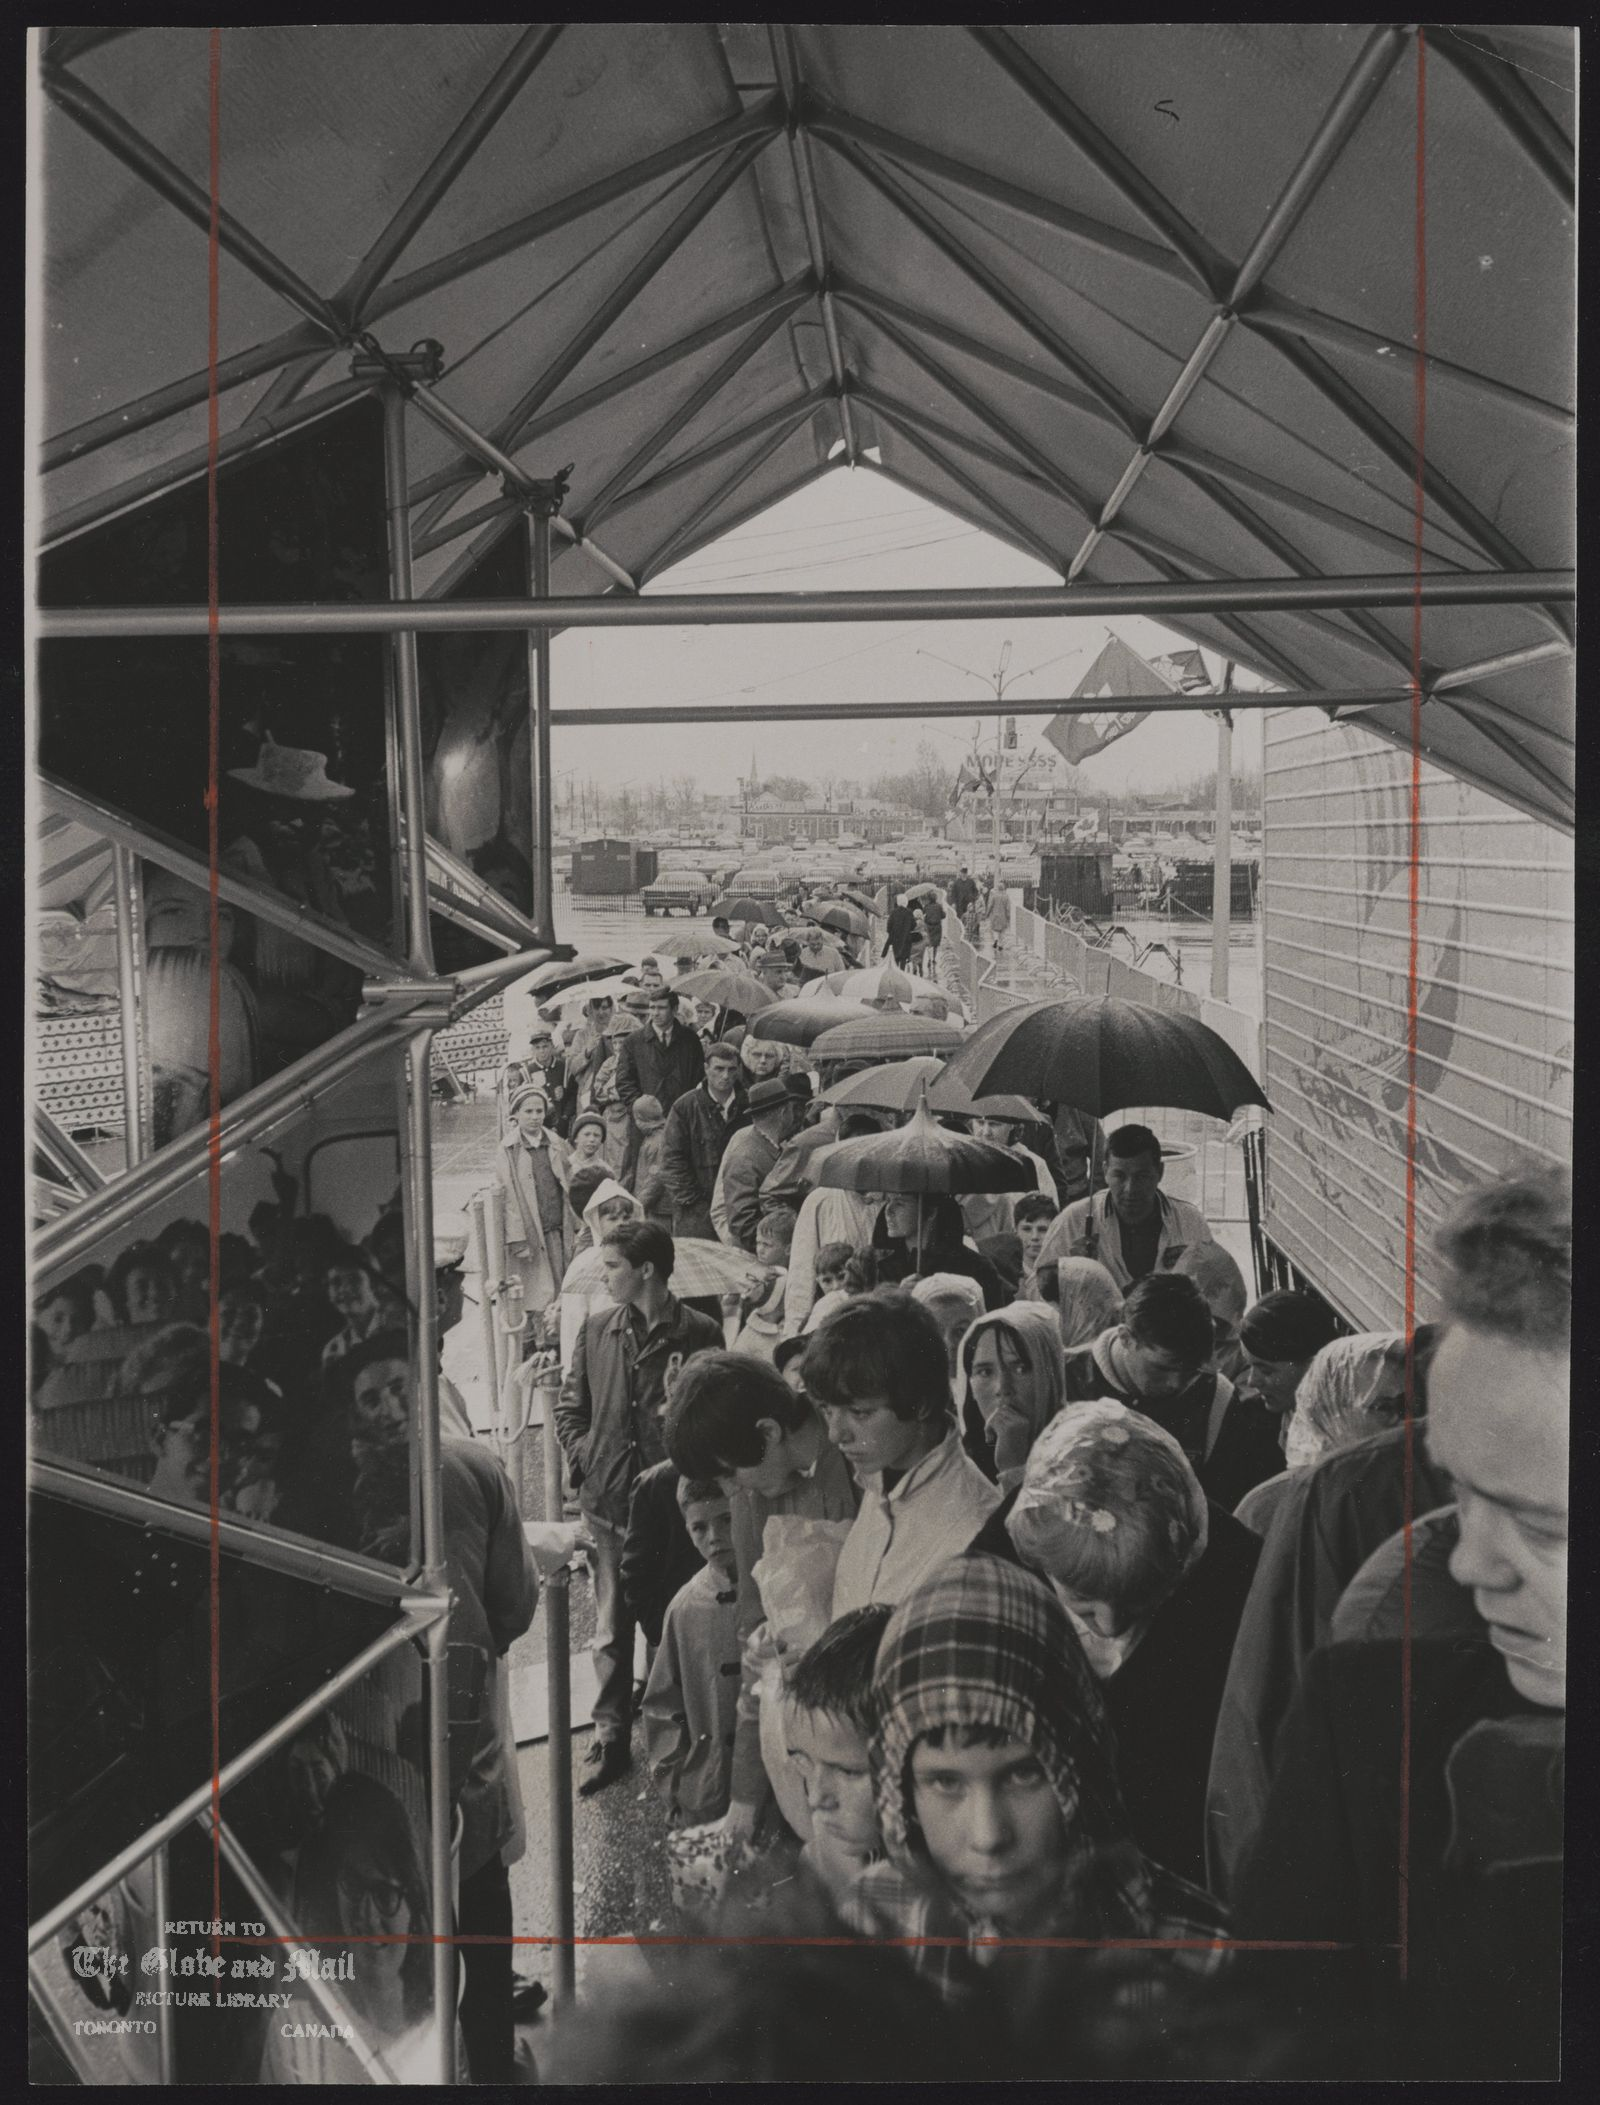 The notes transcribed from the back of this photograph are as follows: CANADA Centennial Caravans Line up for Confederation Caravan. Umbrella-armed visitors line up in the rain to tour the Confederation caravan in Richmond Hill. The caravan stays there until tomorrow before moving to Newmarket.